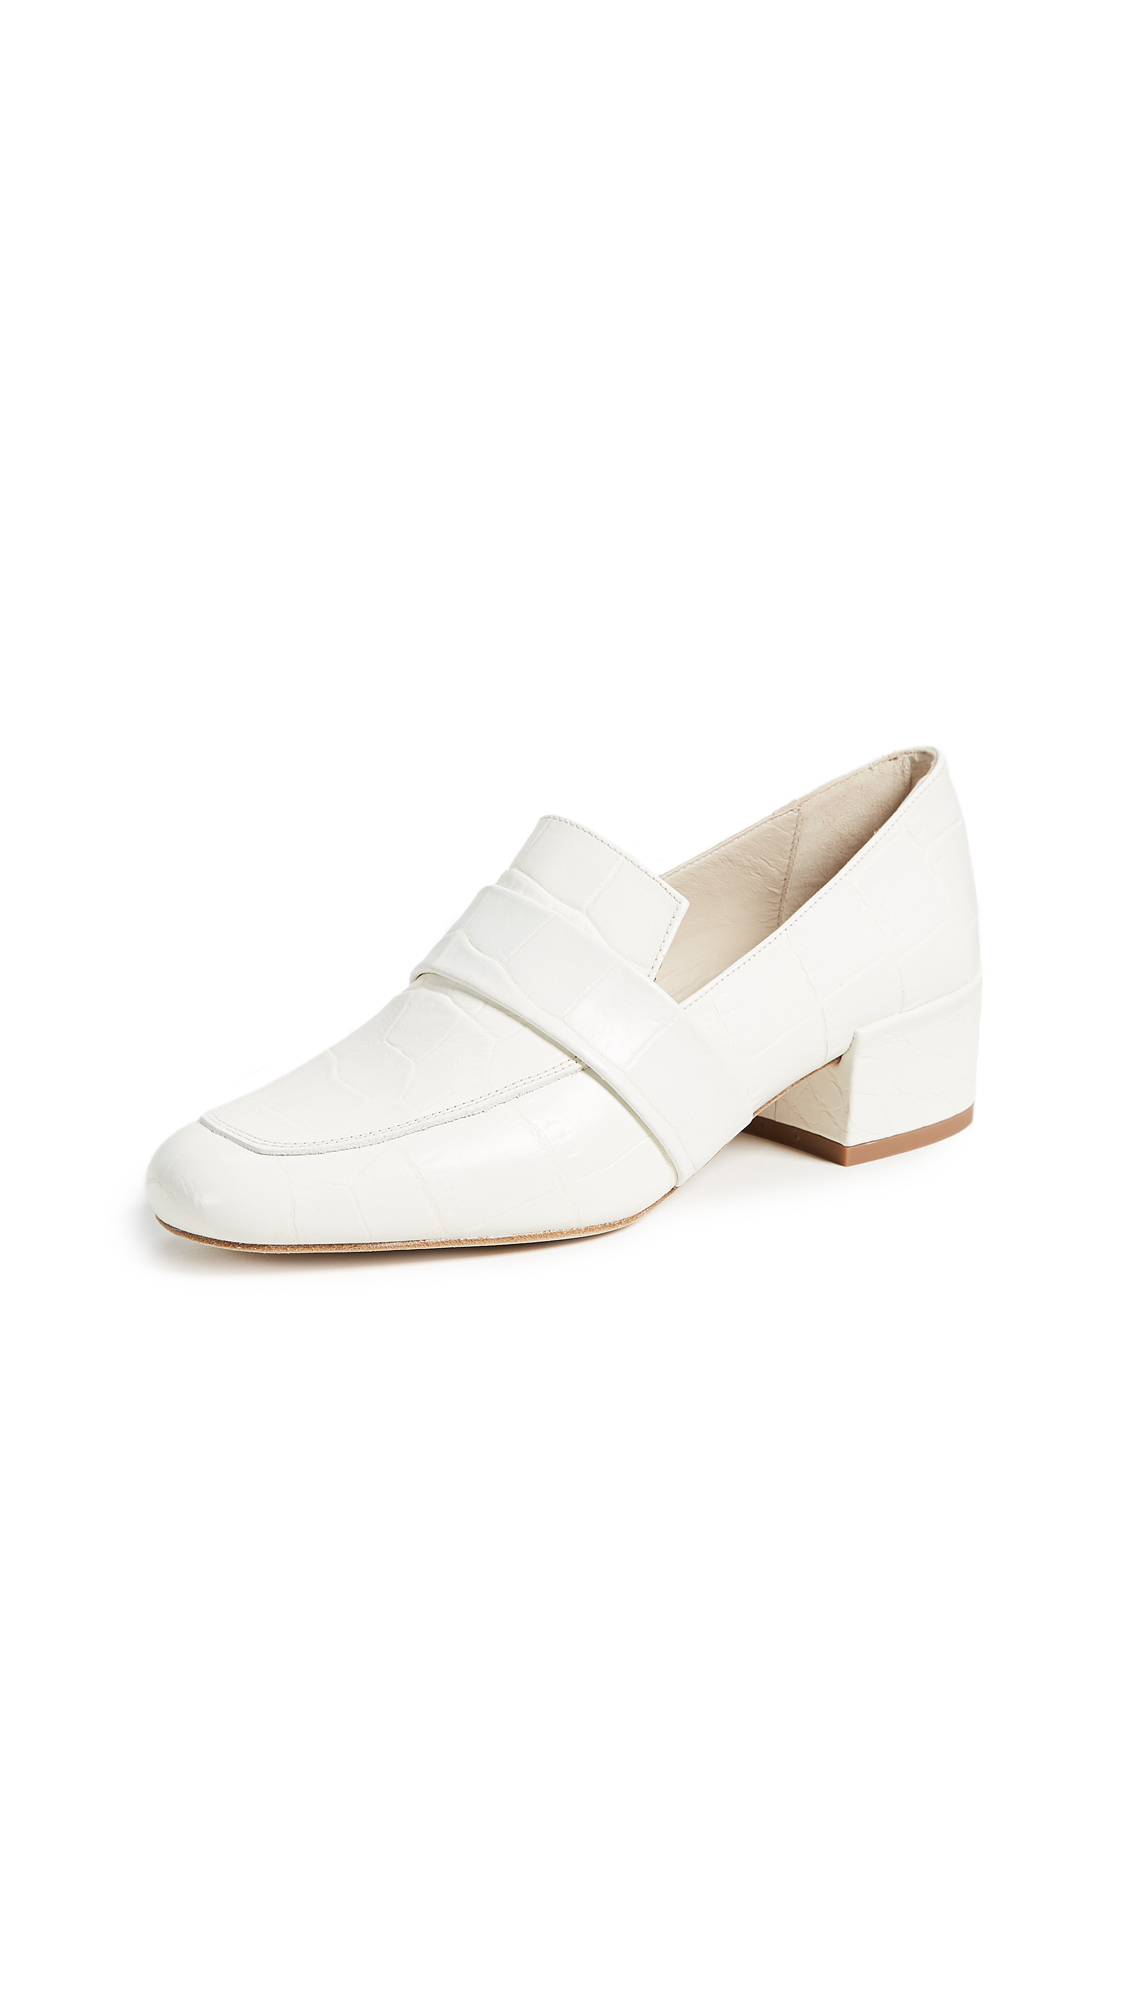 Freda Salvador The Rock Block Heel Loafers - White